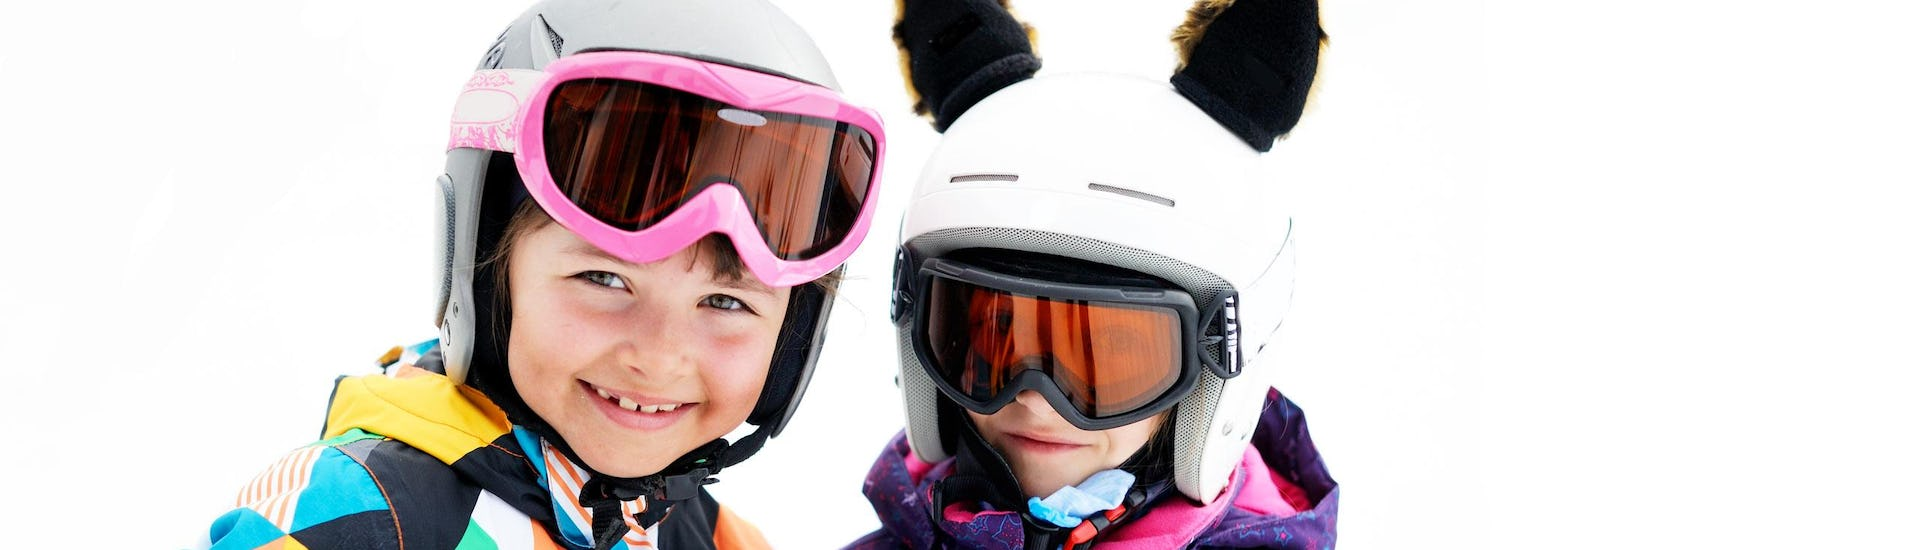 Two young children smiling at the camera during one of the Ski Instructor Private for Kids - New Year - All Ages organised by ESF Courchevel Village.